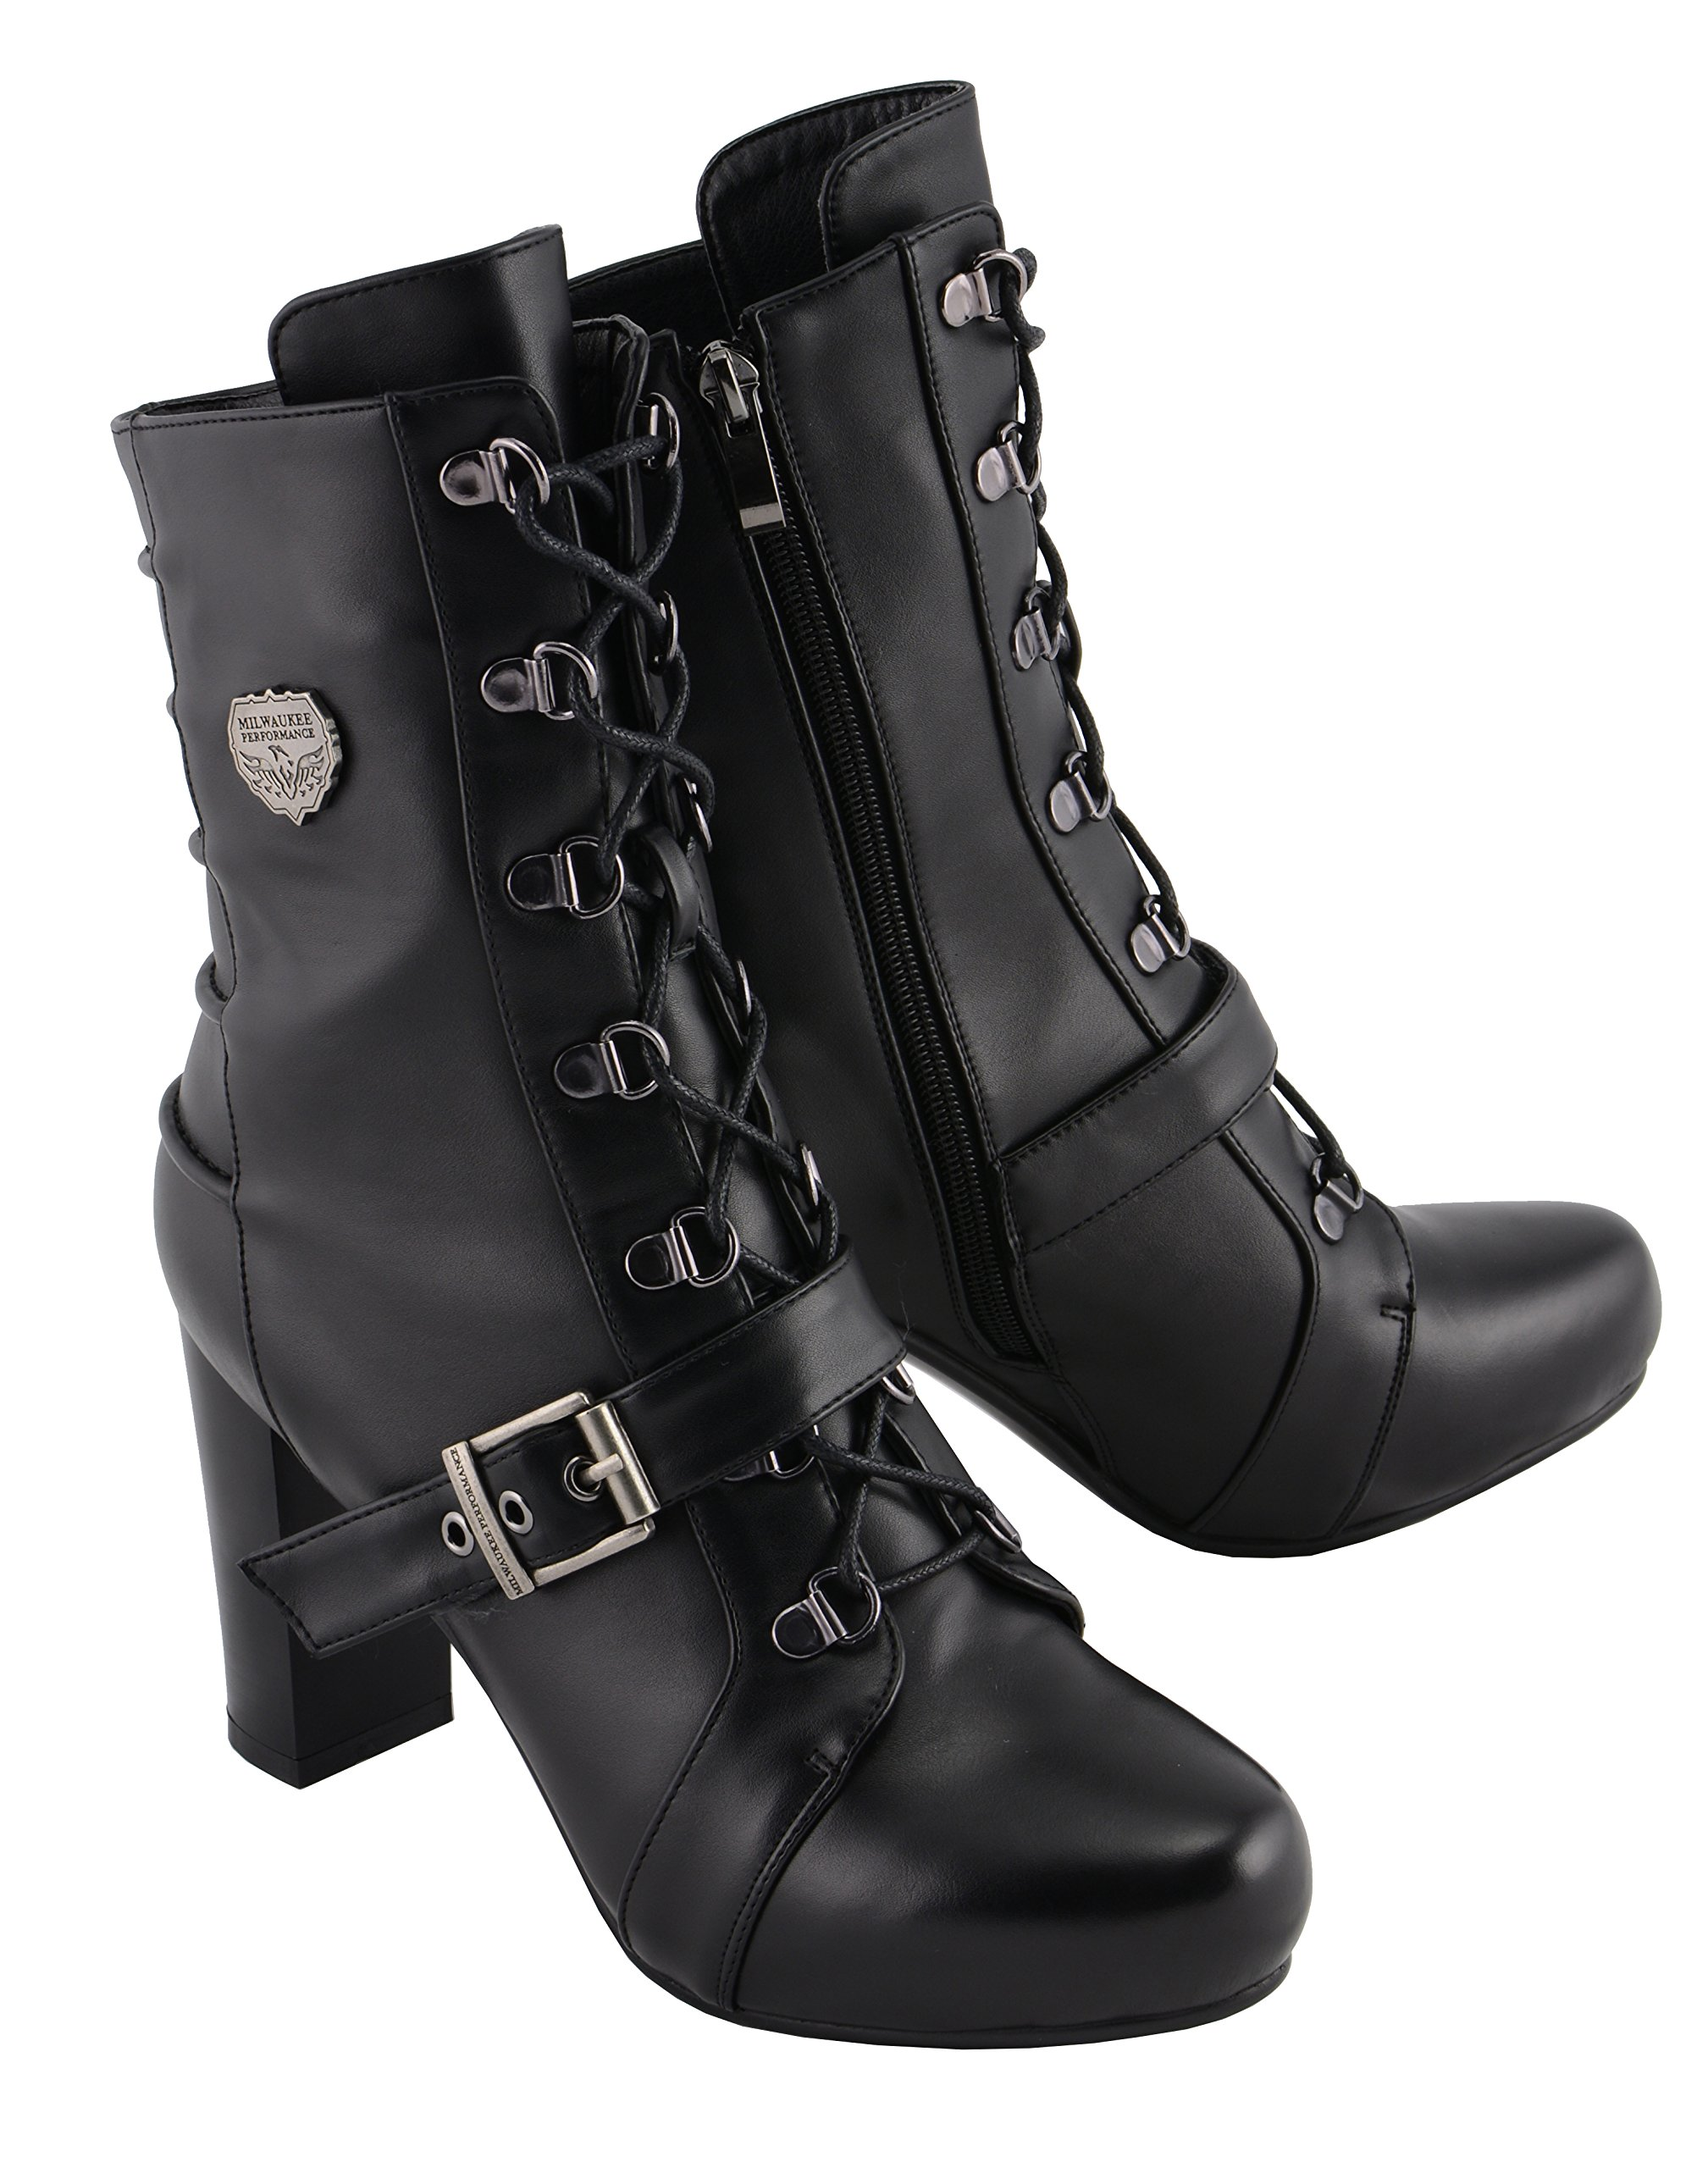 Milwaukee Leather Women's Lace Front Boot Black 8